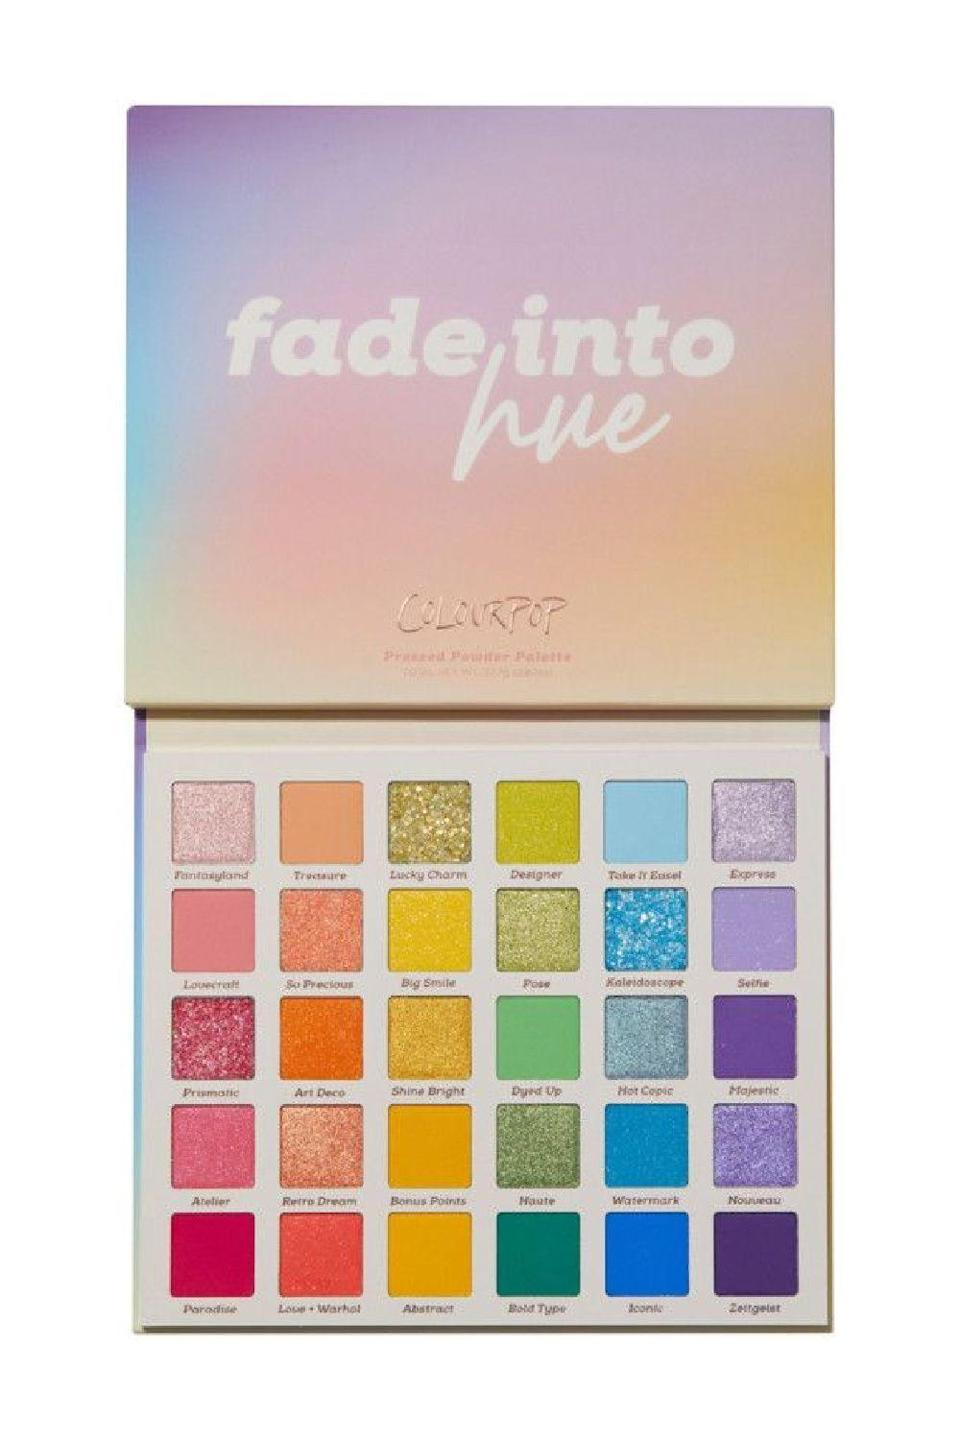 """<p><strong>ColourPop</strong></p><p>ulta.com</p><p><strong>$34.00</strong></p><p><a href=""""https://go.redirectingat.com?id=74968X1596630&url=https%3A%2F%2Fwww.ulta.com%2Fp%2Ffade-into-hue-eyeshadow-palette-pimprod2024493&sref=https%3A%2F%2Fwww.cosmopolitan.com%2Fstyle-beauty%2Fbeauty%2Fg36596599%2Fbest-eyeshadow-palettes%2F"""" rel=""""nofollow noopener"""" target=""""_blank"""" data-ylk=""""slk:Shop Now"""" class=""""link rapid-noclick-resp"""">Shop Now</a></p><p>Looking for something simple, subdued, soft, and natural? Scroll on, friend, because this ain't it. All you makeup devotees totally bored by <a href=""""https://www.cosmopolitan.com/style-beauty/beauty/g28864766/nude-eyeshadow-palette/"""" rel=""""nofollow noopener"""" target=""""_blank"""" data-ylk=""""slk:nude eyeshadow palettes"""" class=""""link rapid-noclick-resp"""">nude eyeshadow palettes</a> need this bright, bold eyeshadow palette that comes with <strong>a mix of</strong><strong> pastels in matte, metallic, glitter, and matte sparkle finishes</strong>. Colourpop is known for its good-quality eyeshadows at equally impressive prices, and for just over 30 bucks, you get 30 shades with this eyeshadow palette to create any <a href=""""https://www.cosmopolitan.com/style-beauty/beauty/a35279355/best-of-rainbow-eye-looks-cosmo-queens/"""" rel=""""nofollow noopener"""" target=""""_blank"""" data-ylk=""""slk:rainbow eye look"""" class=""""link rapid-noclick-resp"""">rainbow eye look</a>.</p>"""